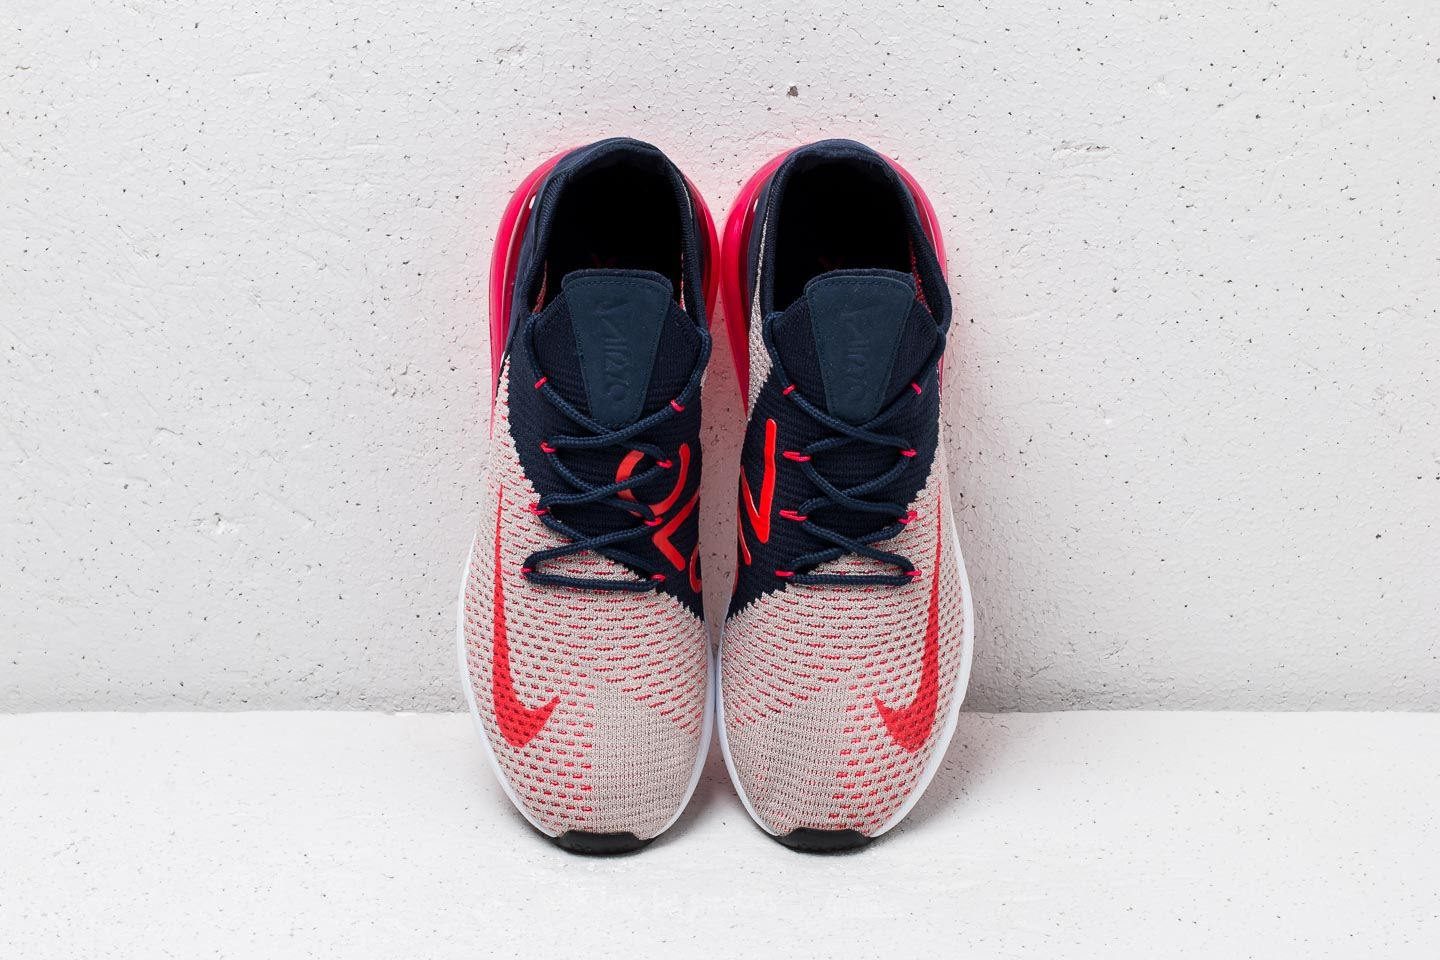 Nike Wmns Air Max 270 Flyknit Moon Particle Red Orbit | Footshop